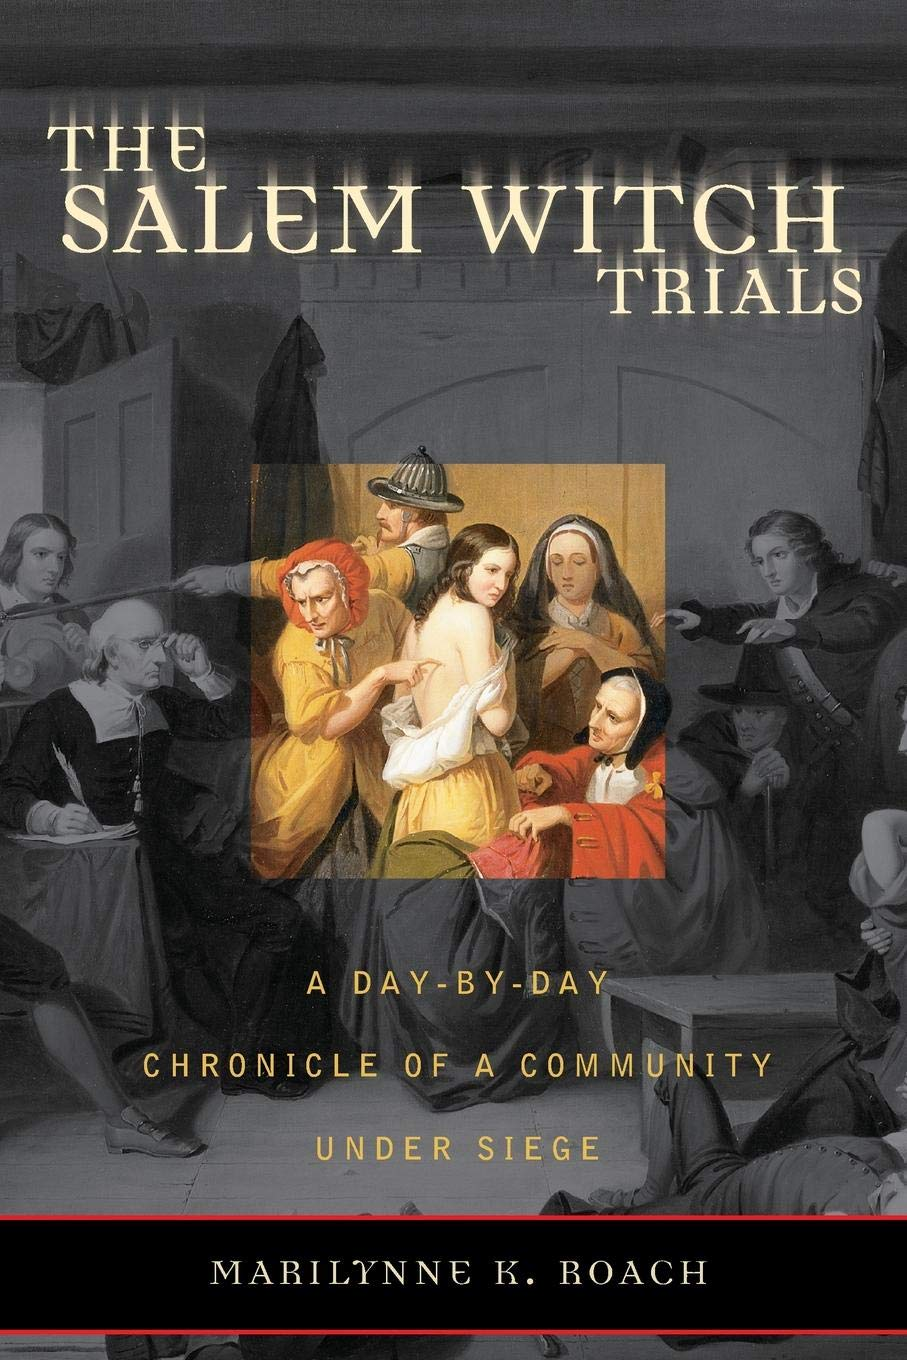 The Salem Witch Trials: A Day-by-Day Chronicle of a